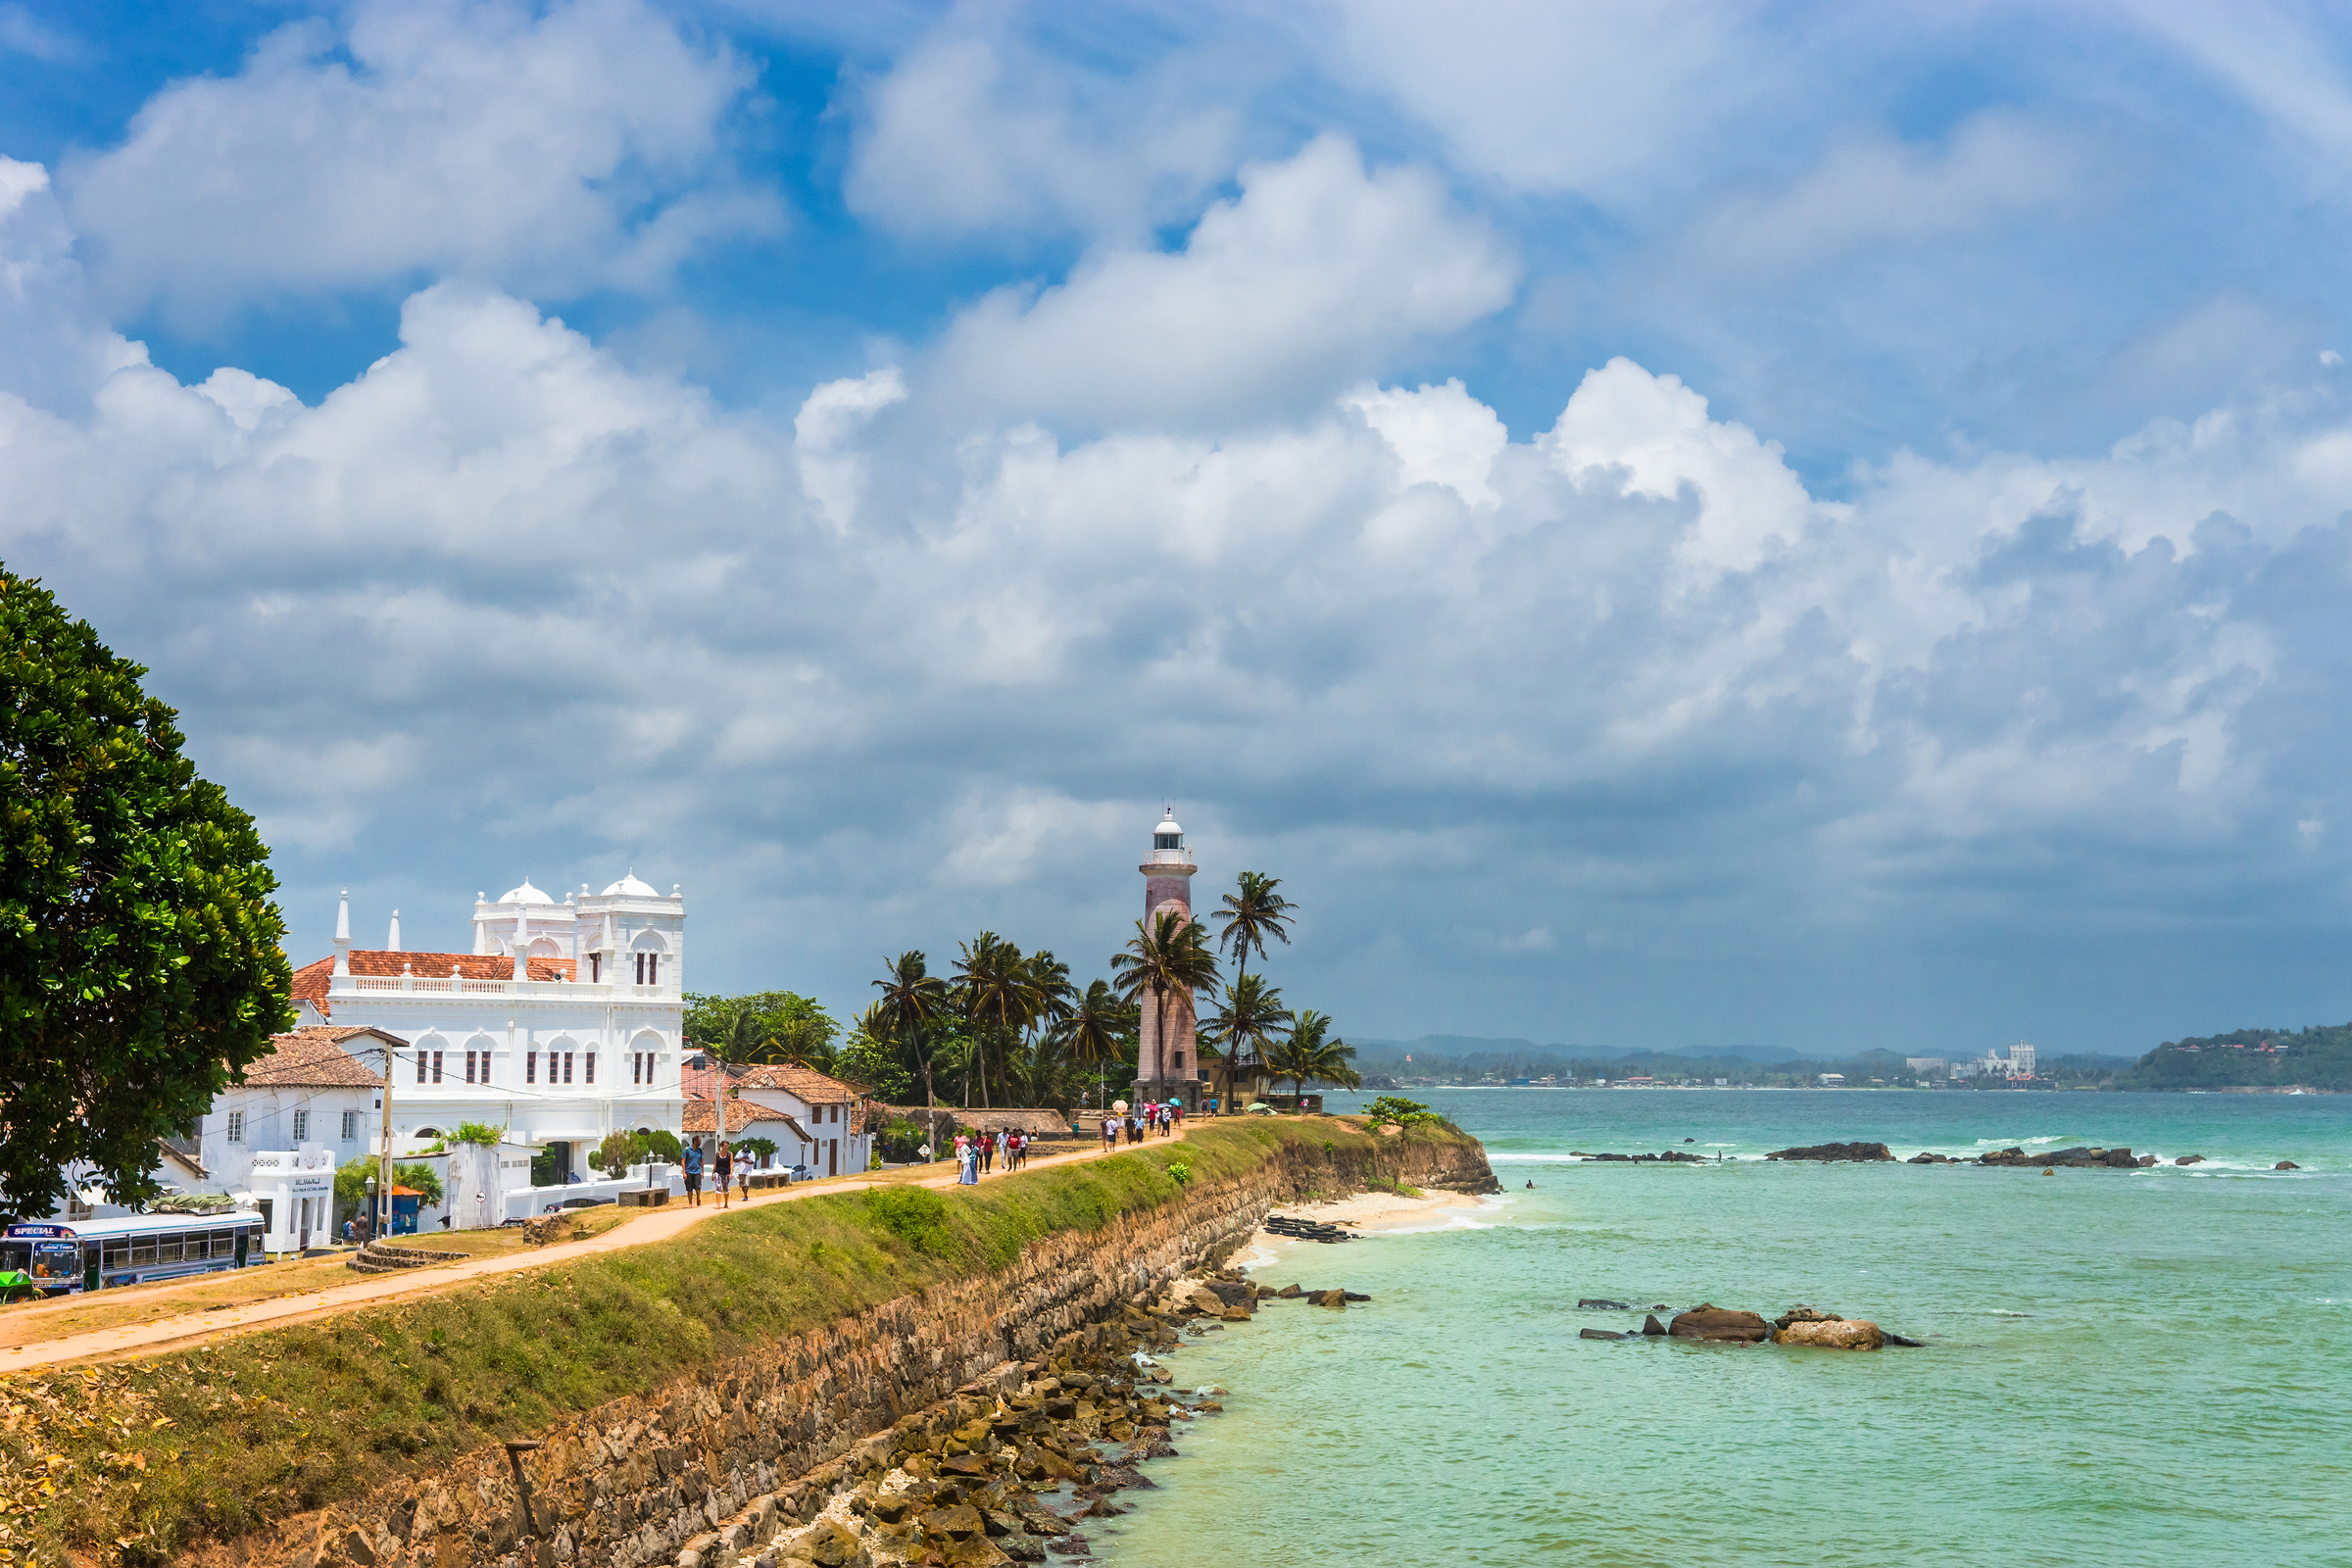 8 Things to Love About Amari Galle Sri Lanka